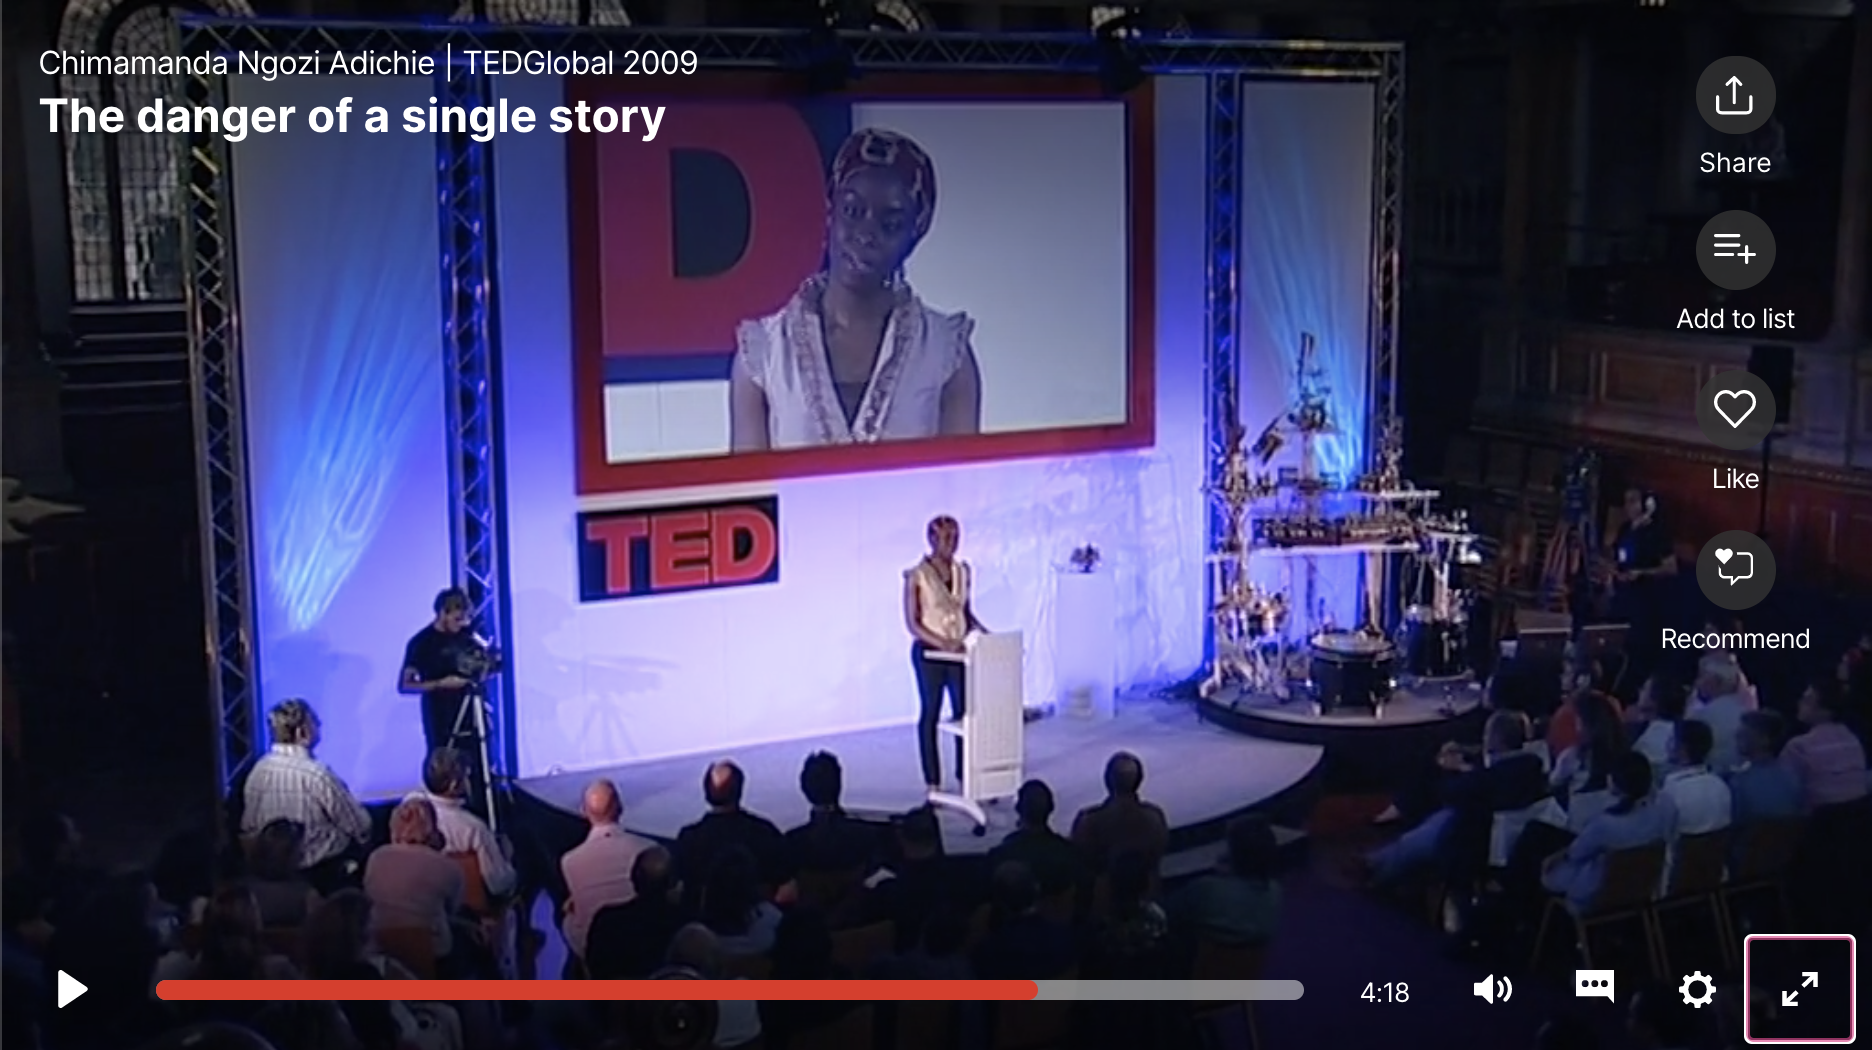 Photo of Adichie at her TED TALK